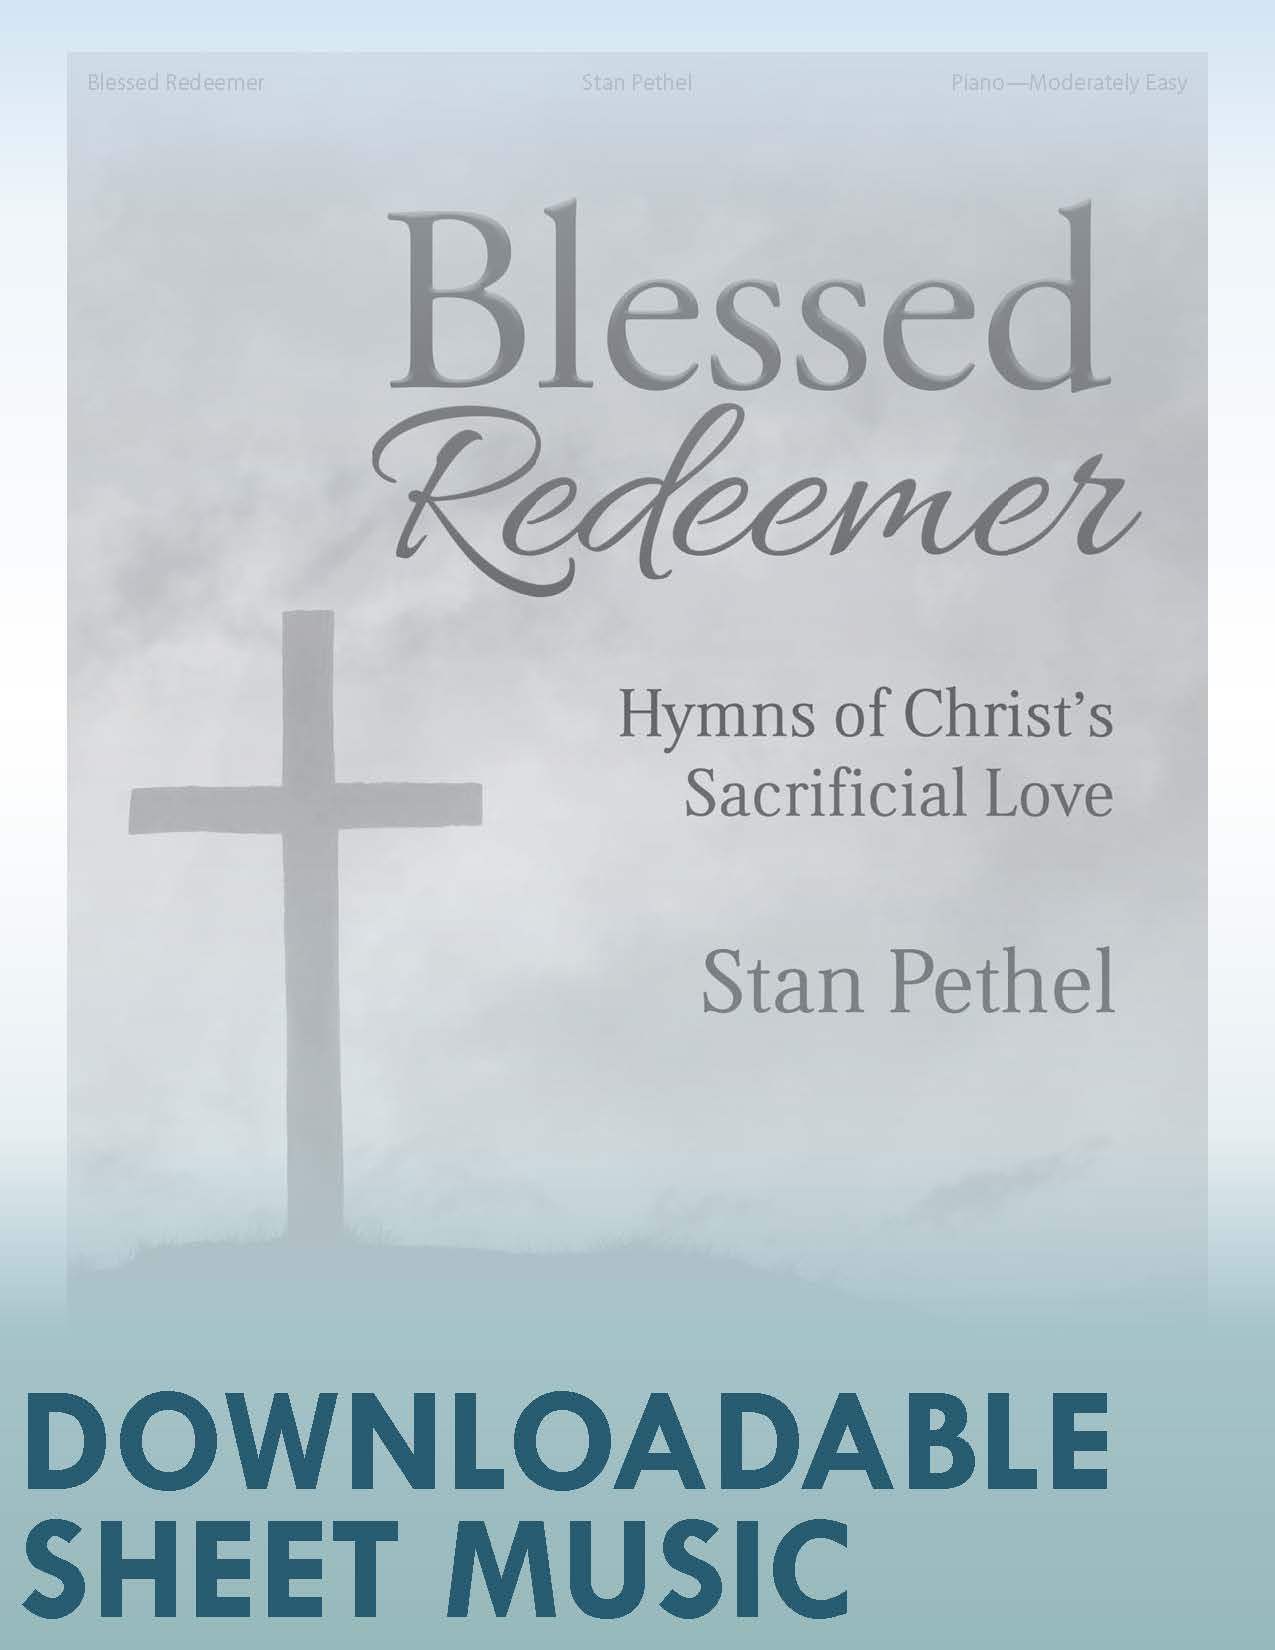 Blessed Redeemer - Digital Download